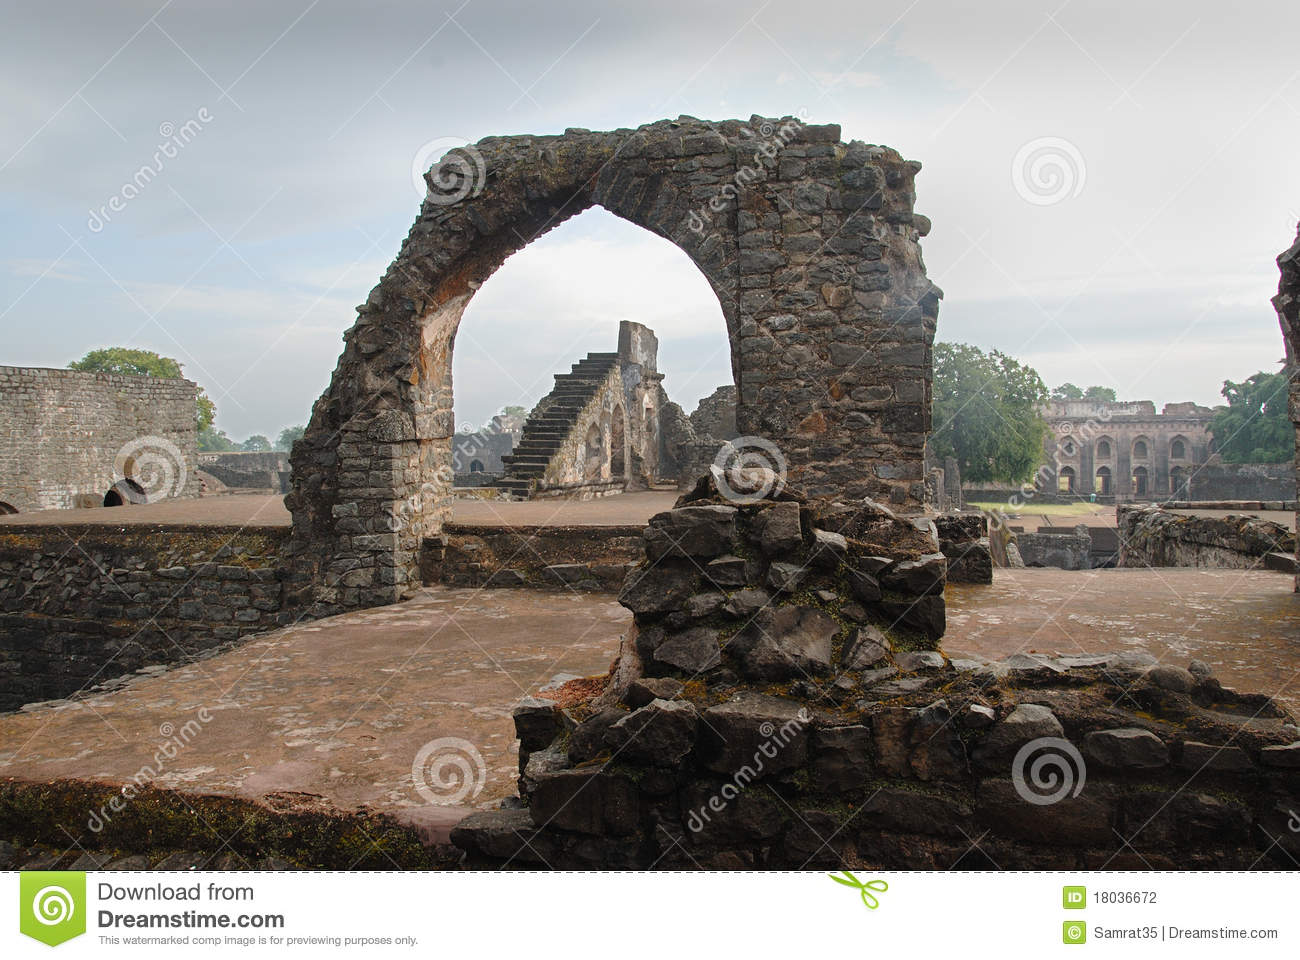 Ancient Architecture Of India Stock Photo - Image of mahal